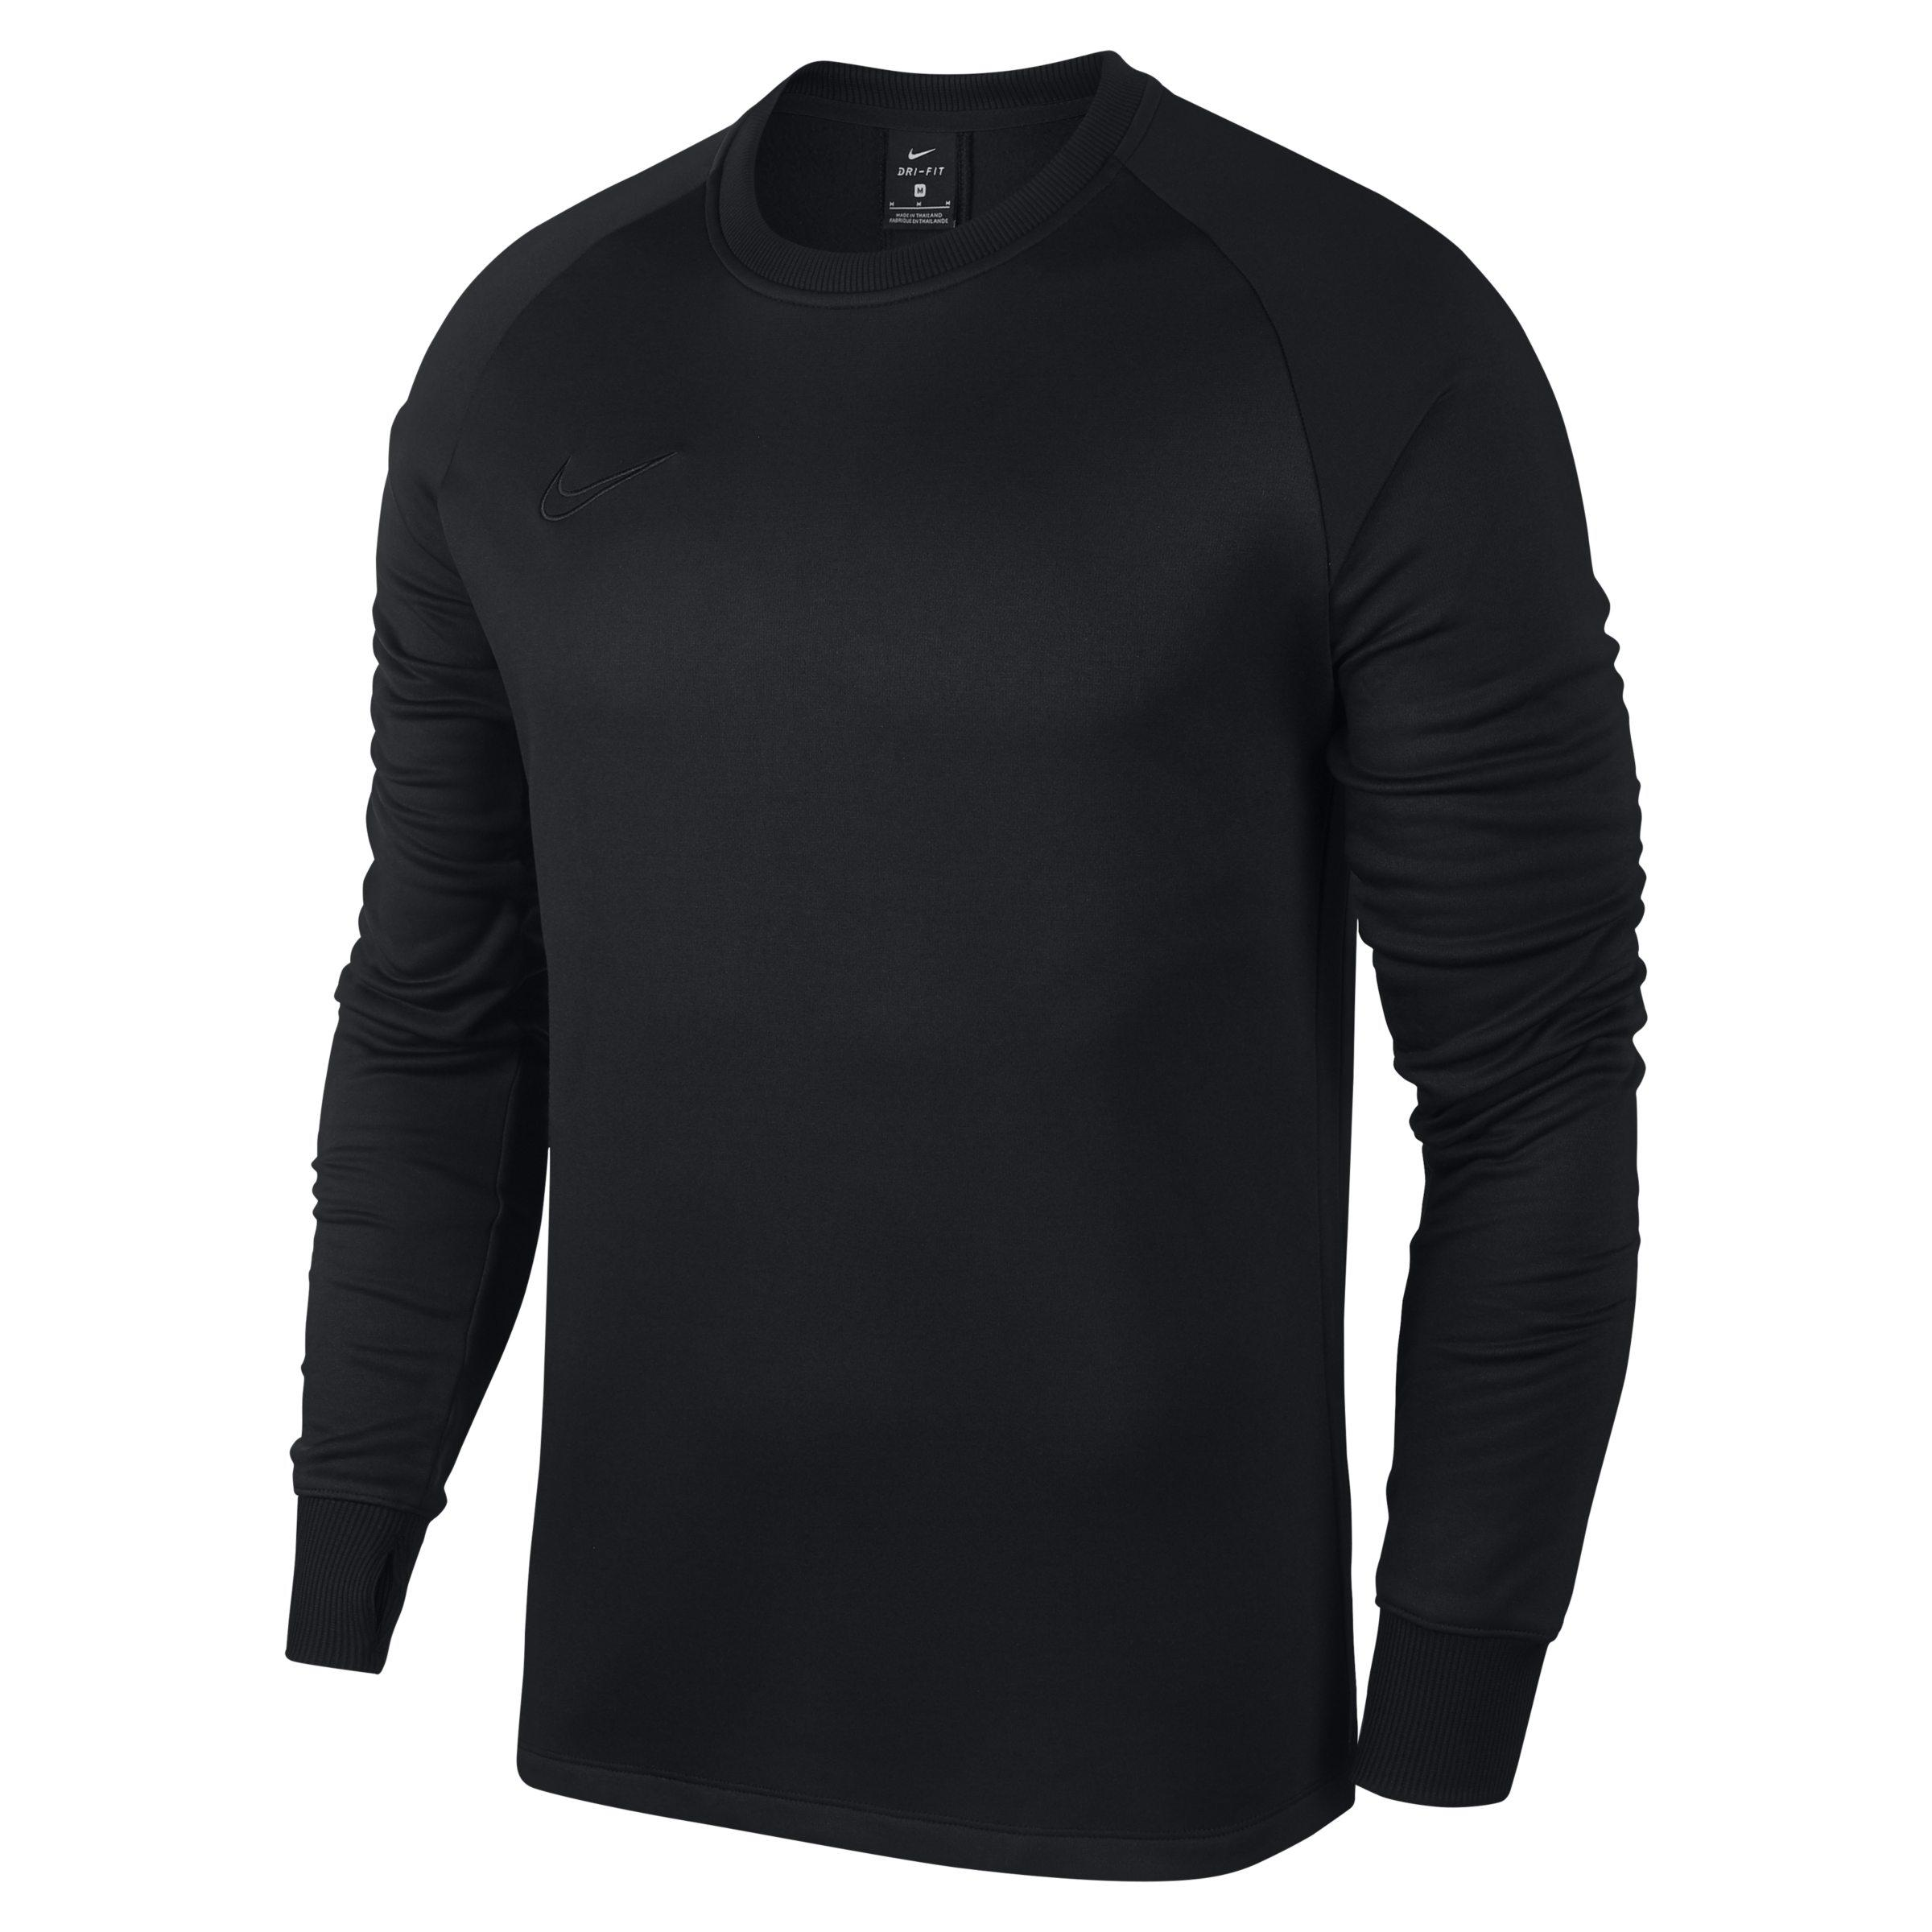 3820a8127 Nike Therma Academy Long-sleeve Football Top in Black for Men - Lyst